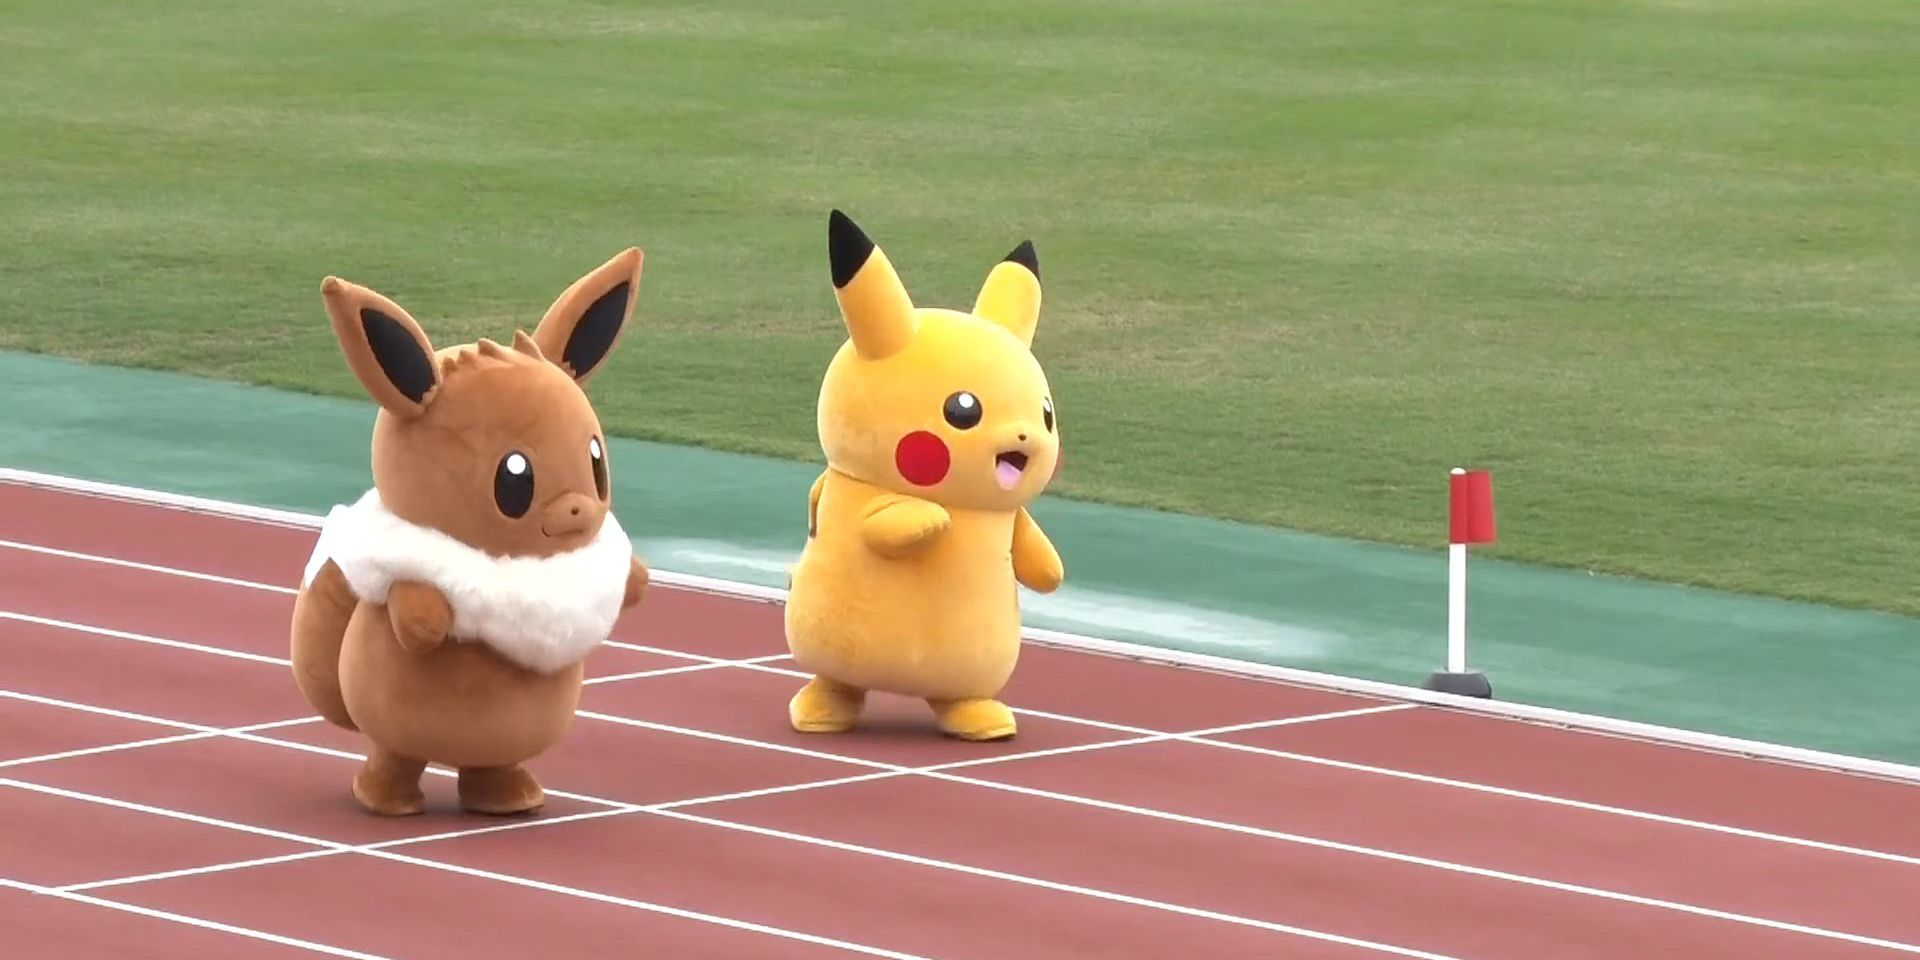 watch pikachu show off his uncanny speed in a race with eevee